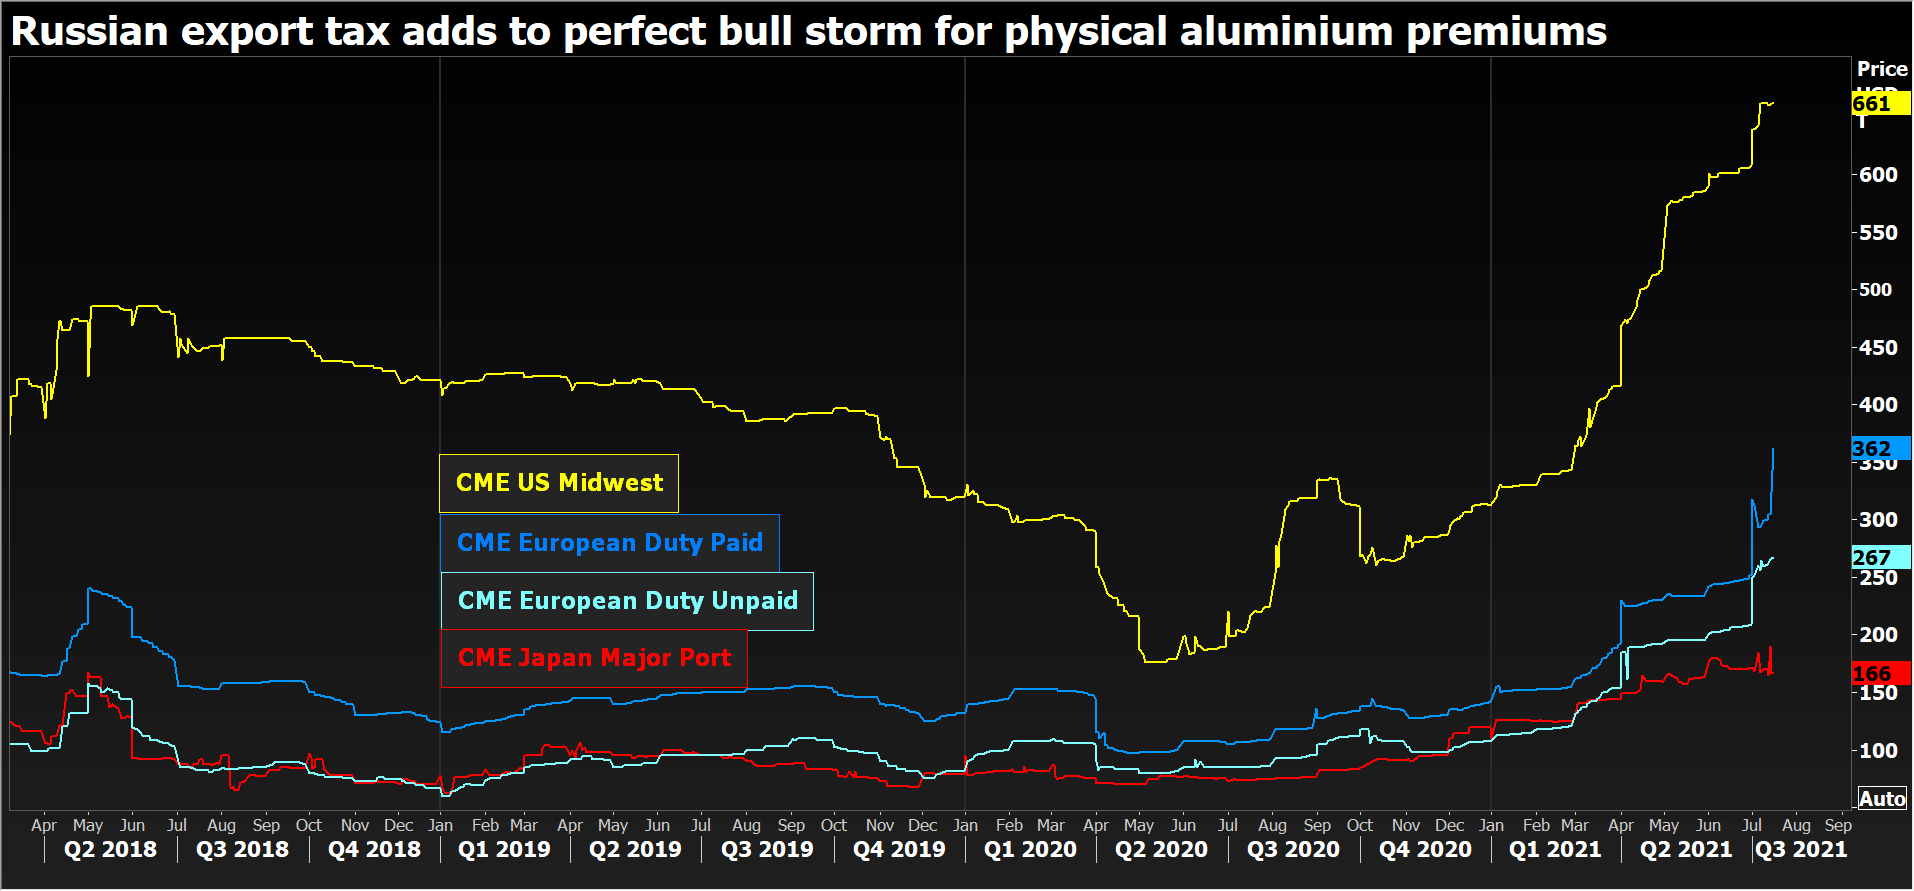 Russian export tax adds to perfect bull storm for aluminum.